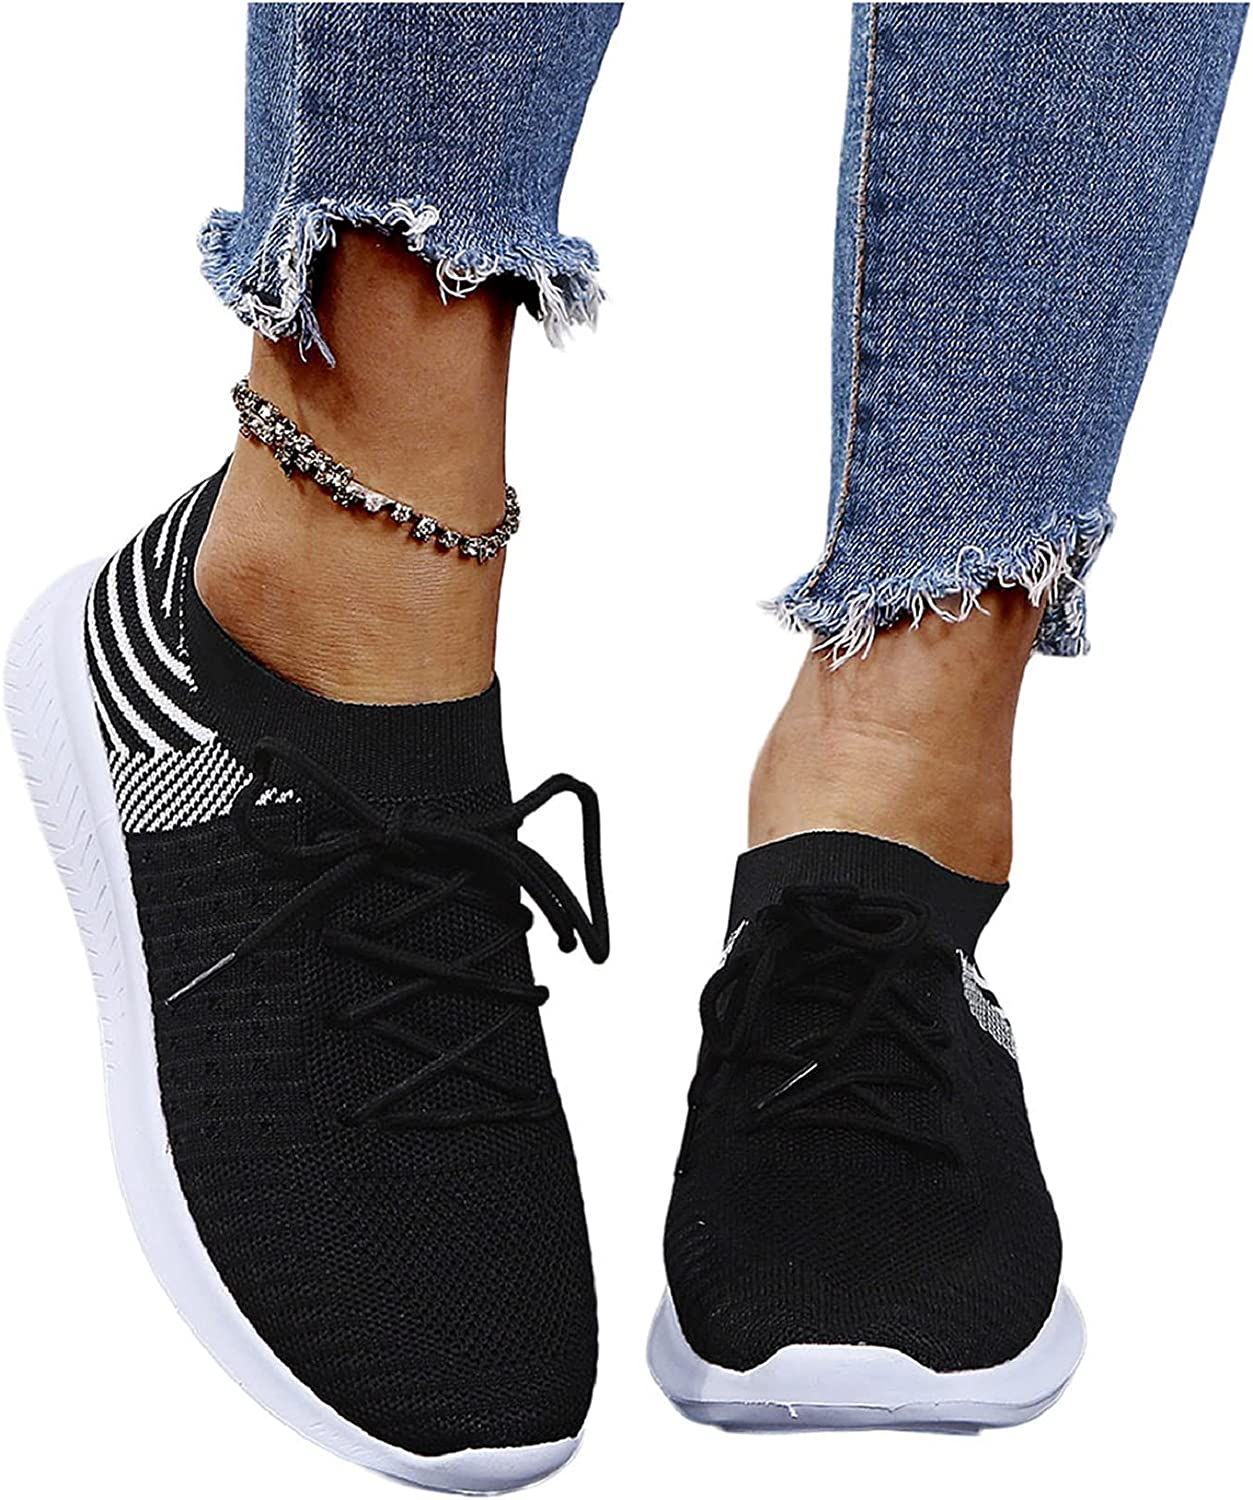 Women lowest price Walking Shoes Lightweight Lace Com List price Casual Running Up